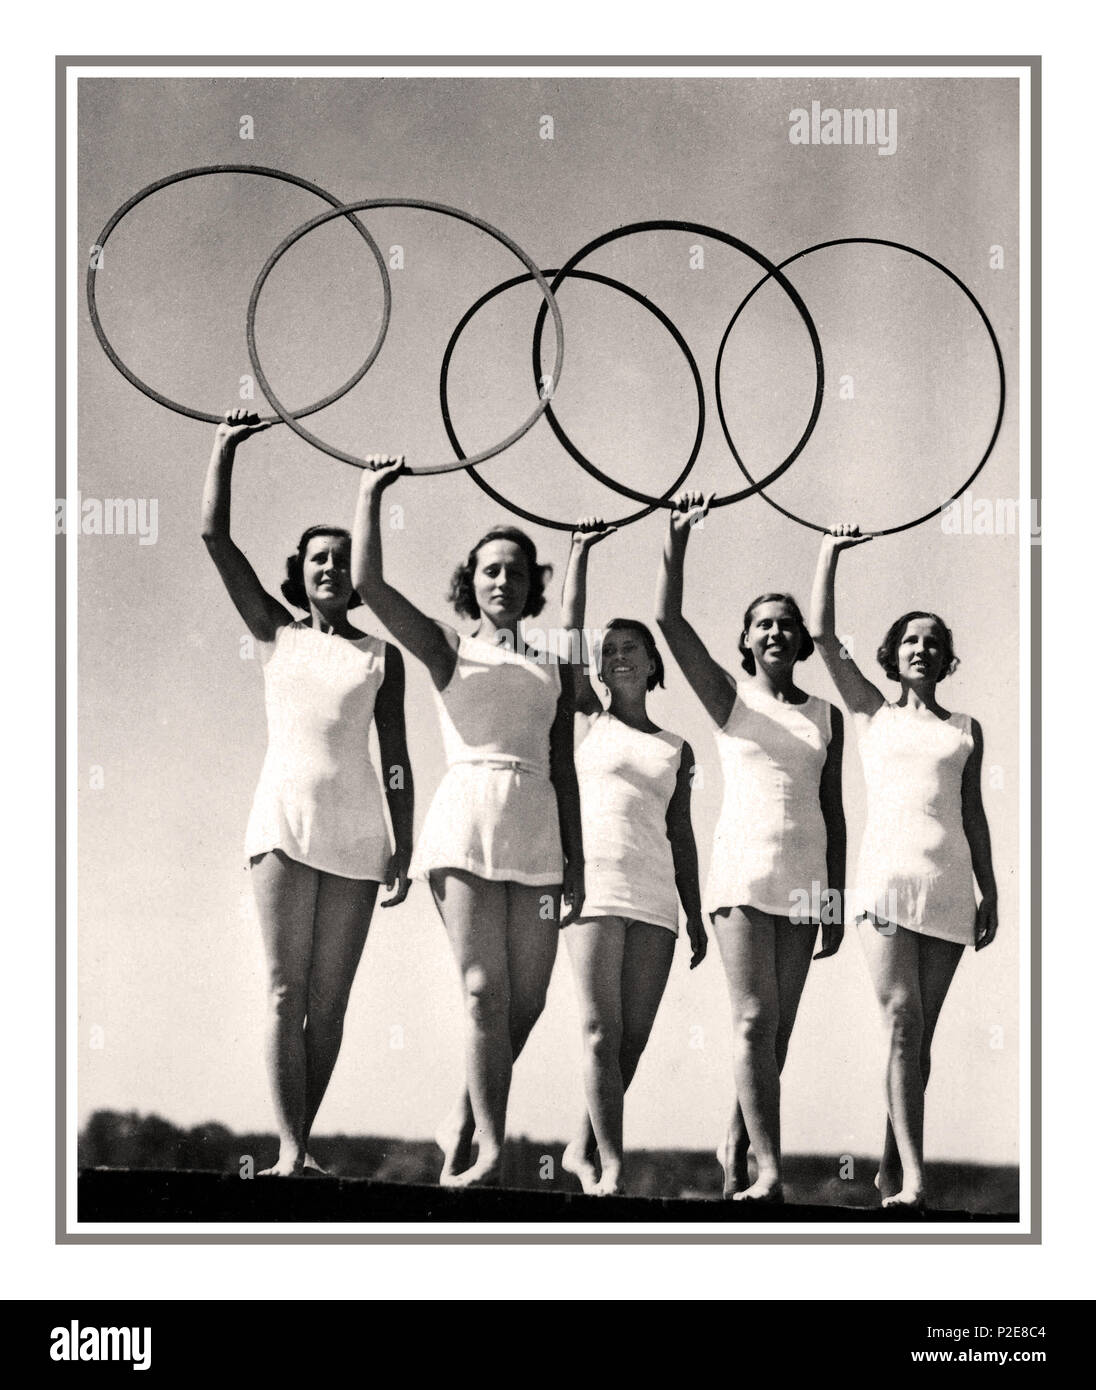 1936 Olympic Games, Berlin, Germany The Olympic Rings held aloft by five young sportswomen 1936 SUMMER OLYMPICS, BERLIN, real photo card showing dancers with the Olympic rings, BERLIN Olympic Stadium  AUGUST 13th 1936 Germany - Stock Image